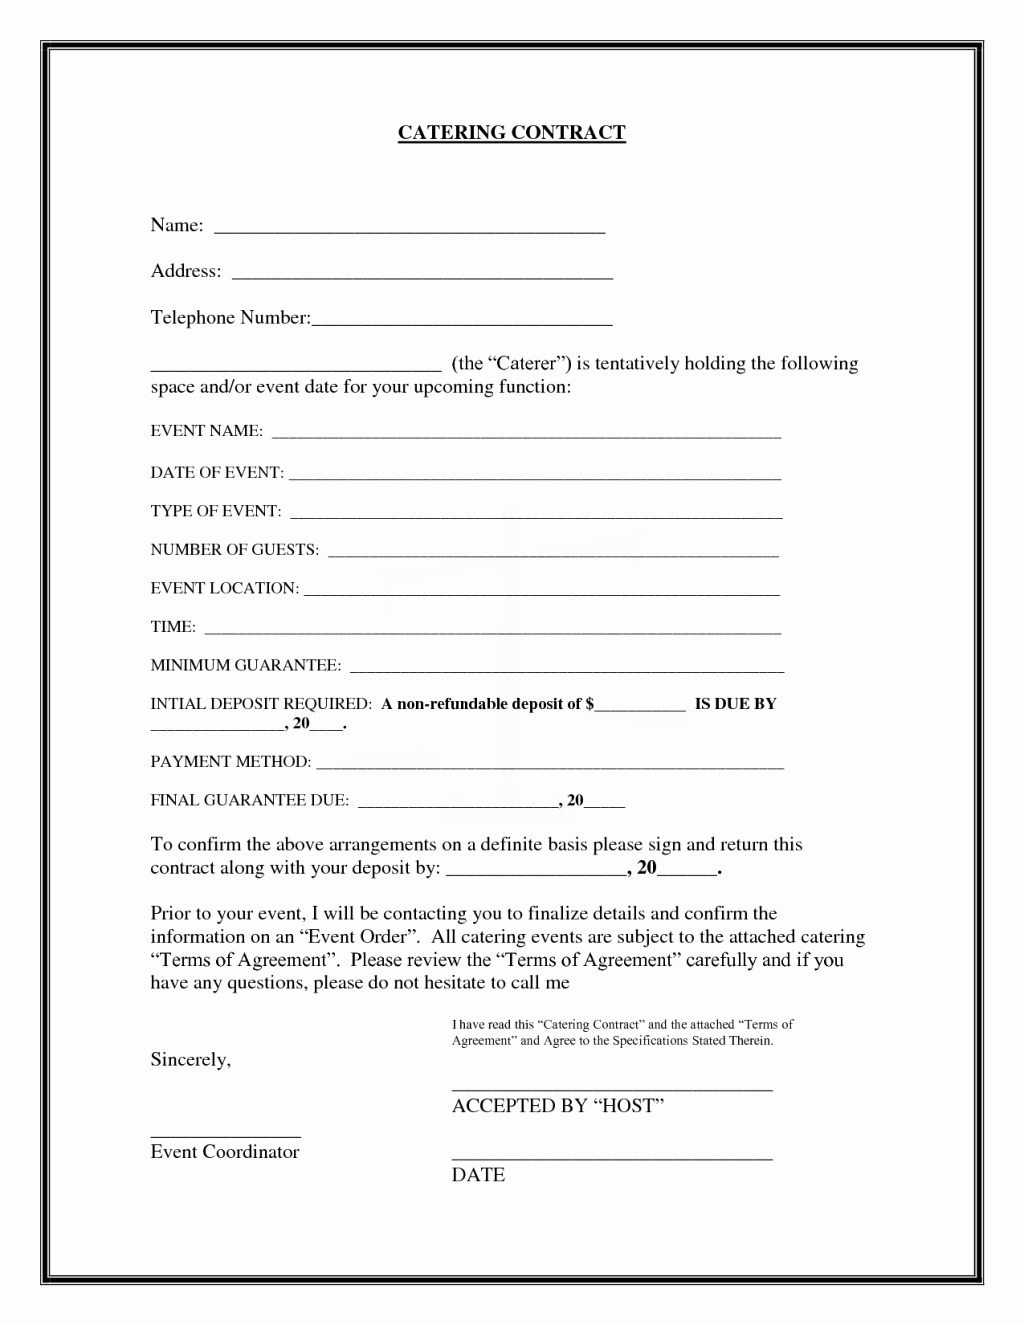 Food Service Contract Template Awesome Interesting Blank Catering Contract Template Example with